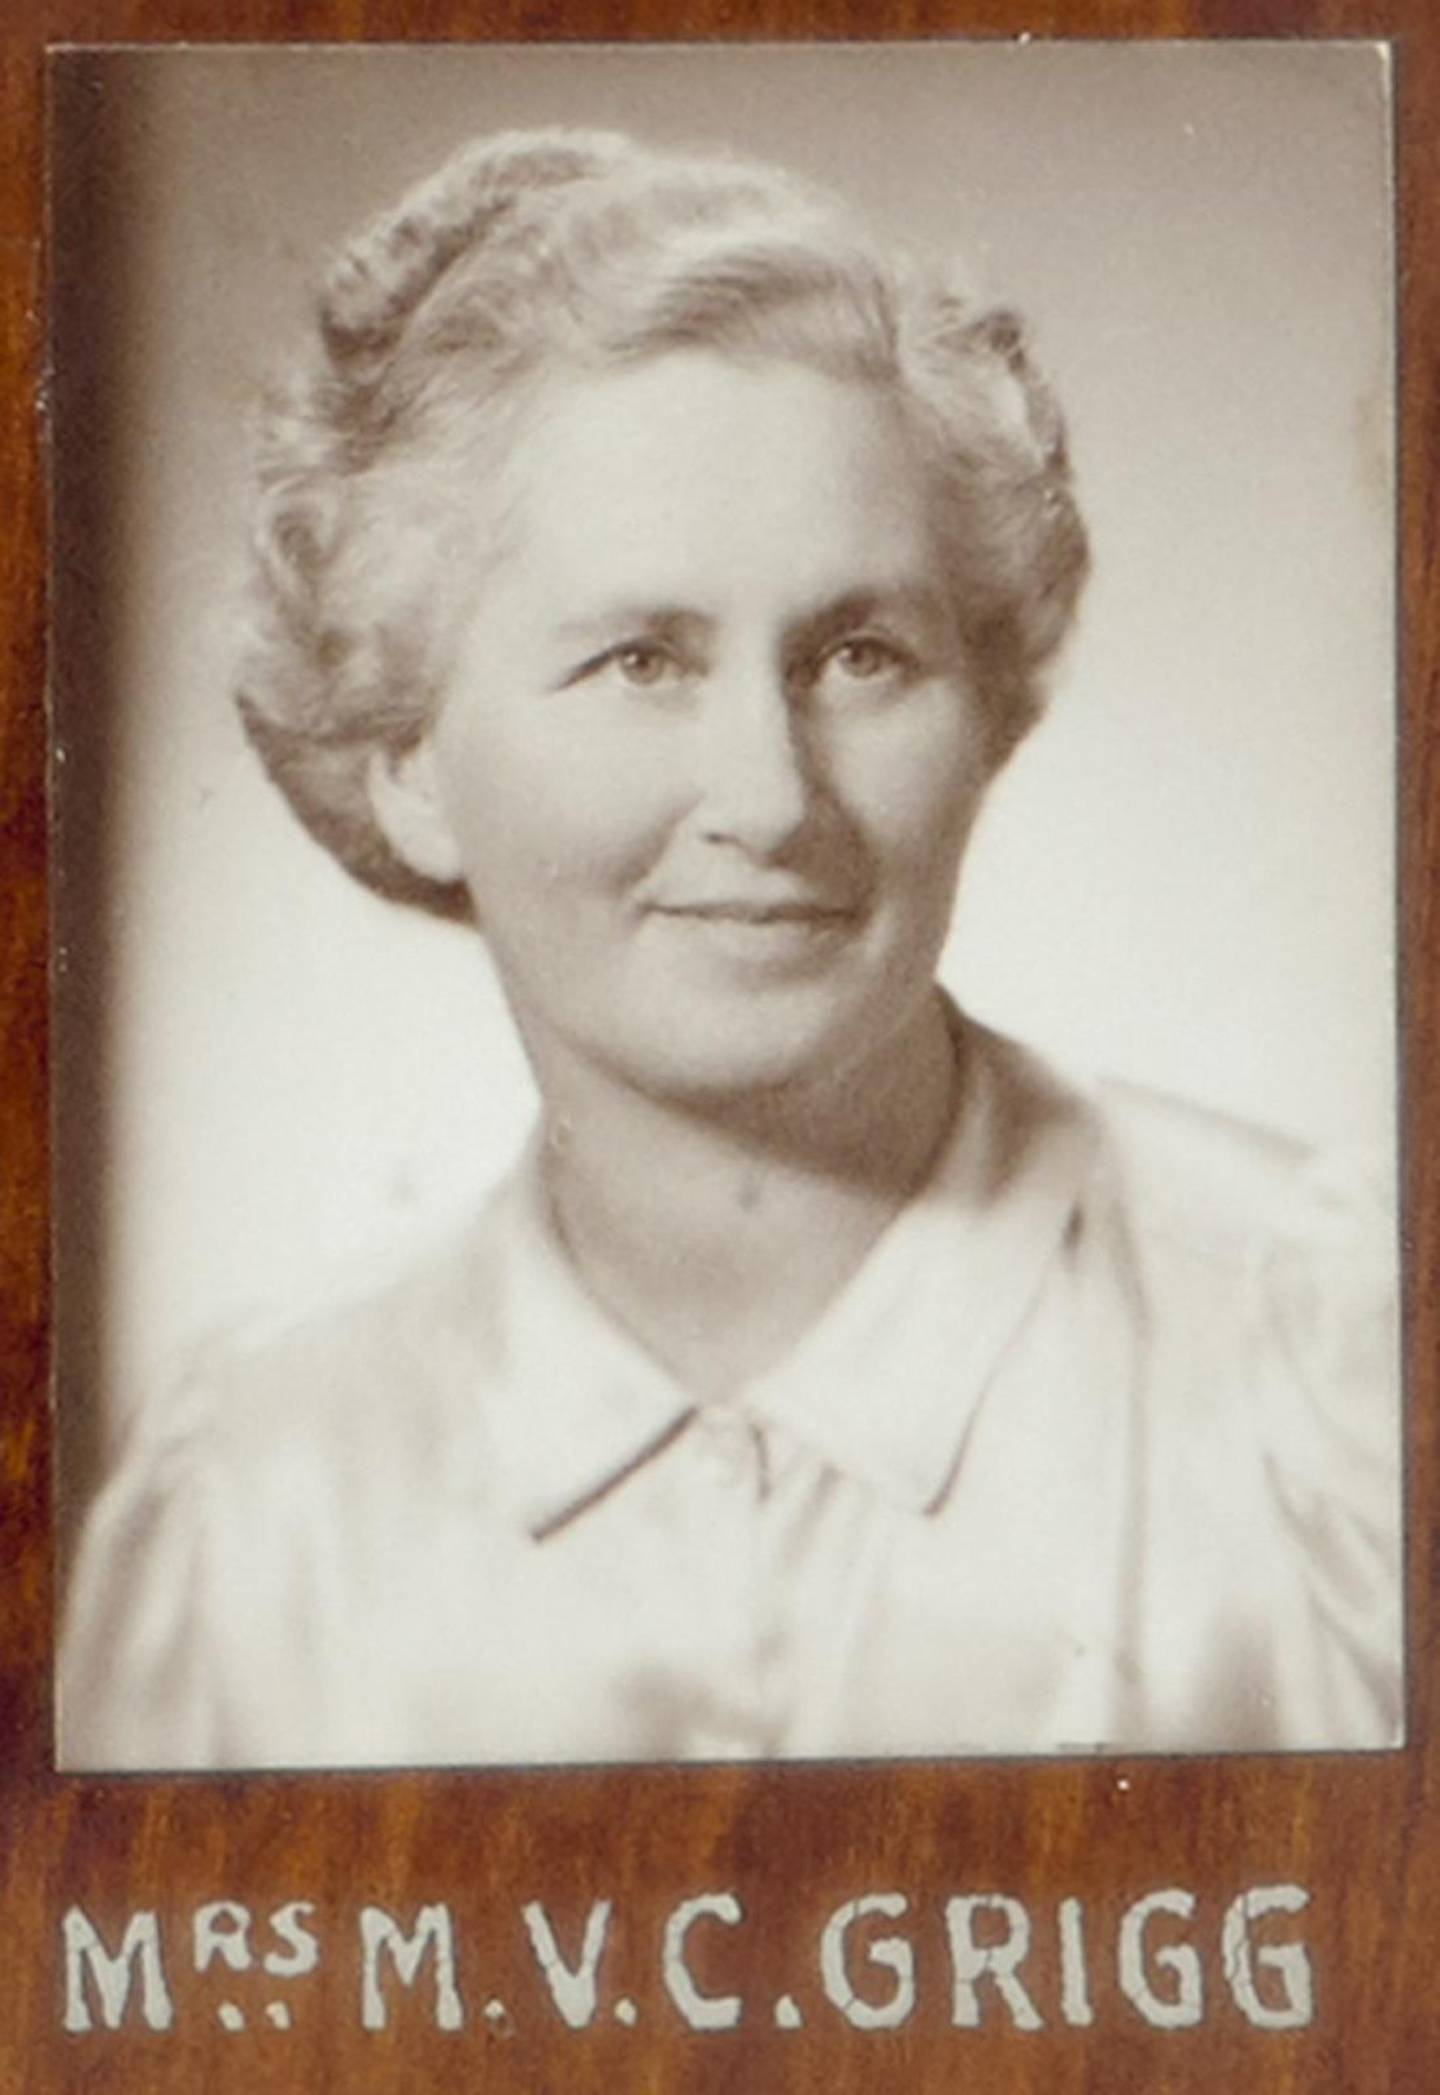 Nicola Grigg's great grandmother and former MP Mary Grigg. Photo: Supplied